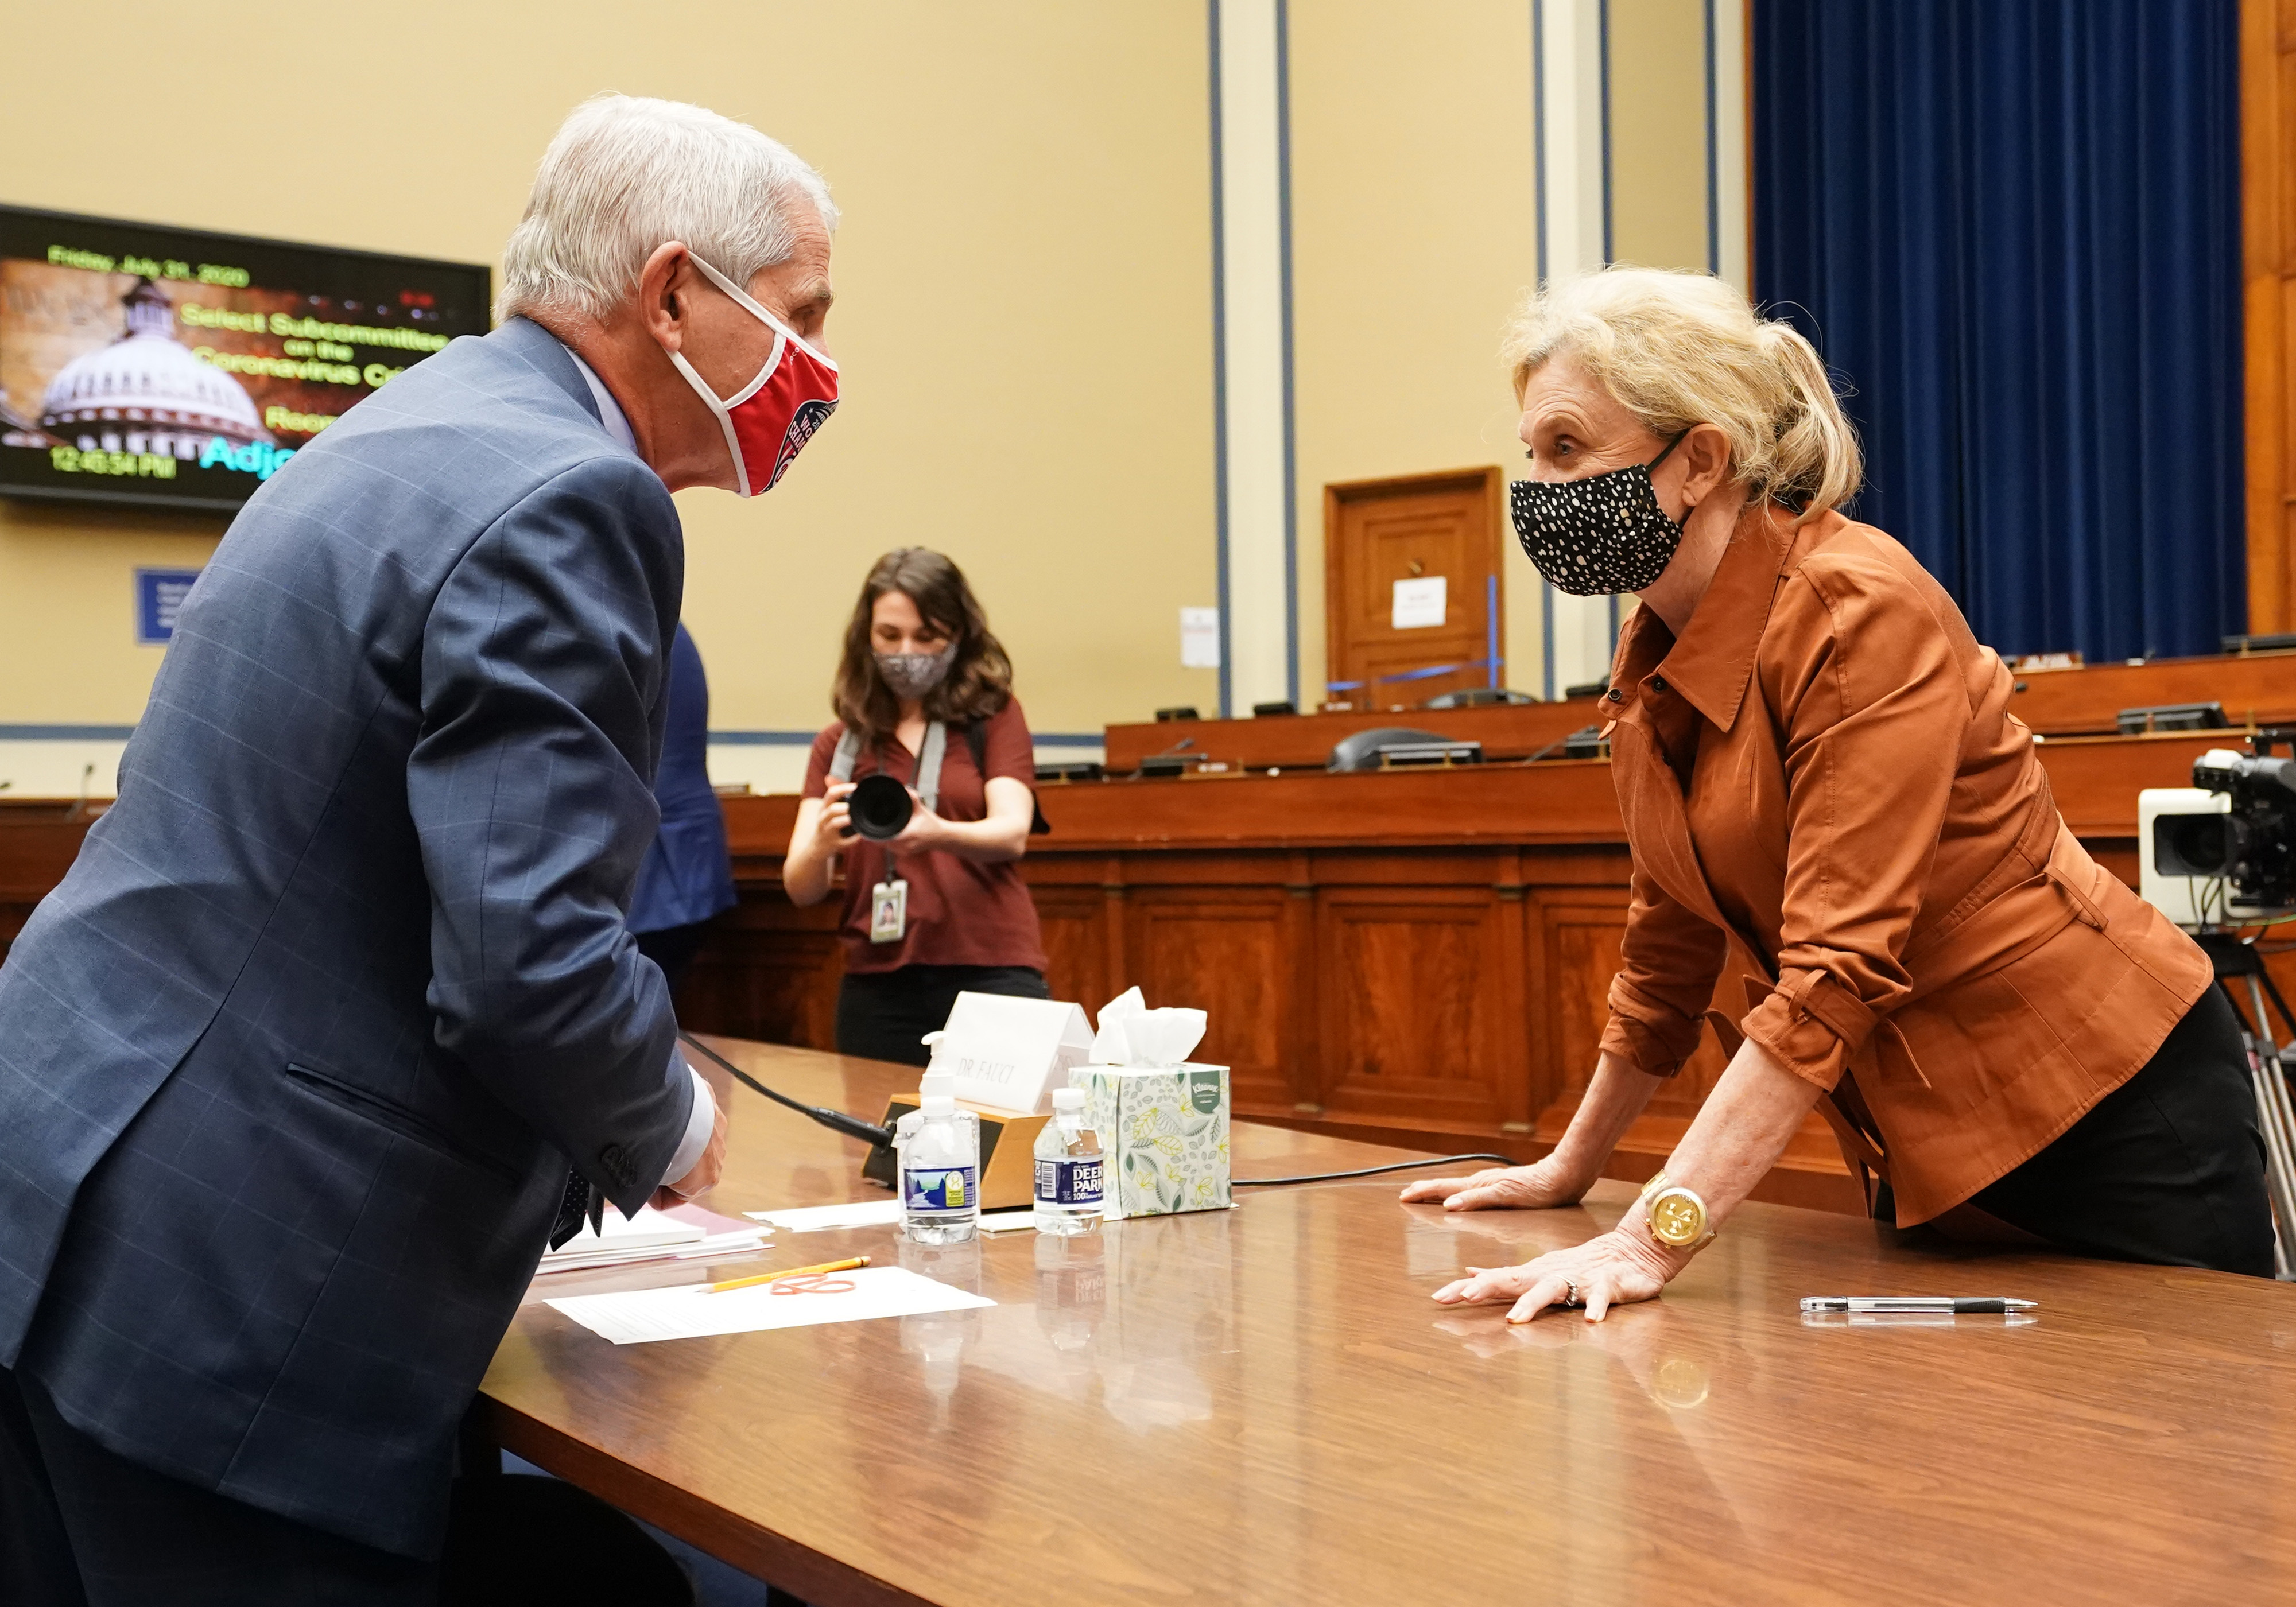 Rep. Carolyn Maloney talks to Dr. Anthony Fauci after a coronavirus hearing on July 31, 2020 in Washington, DC. (Kevin Dietsch-Pool/Getty Images)